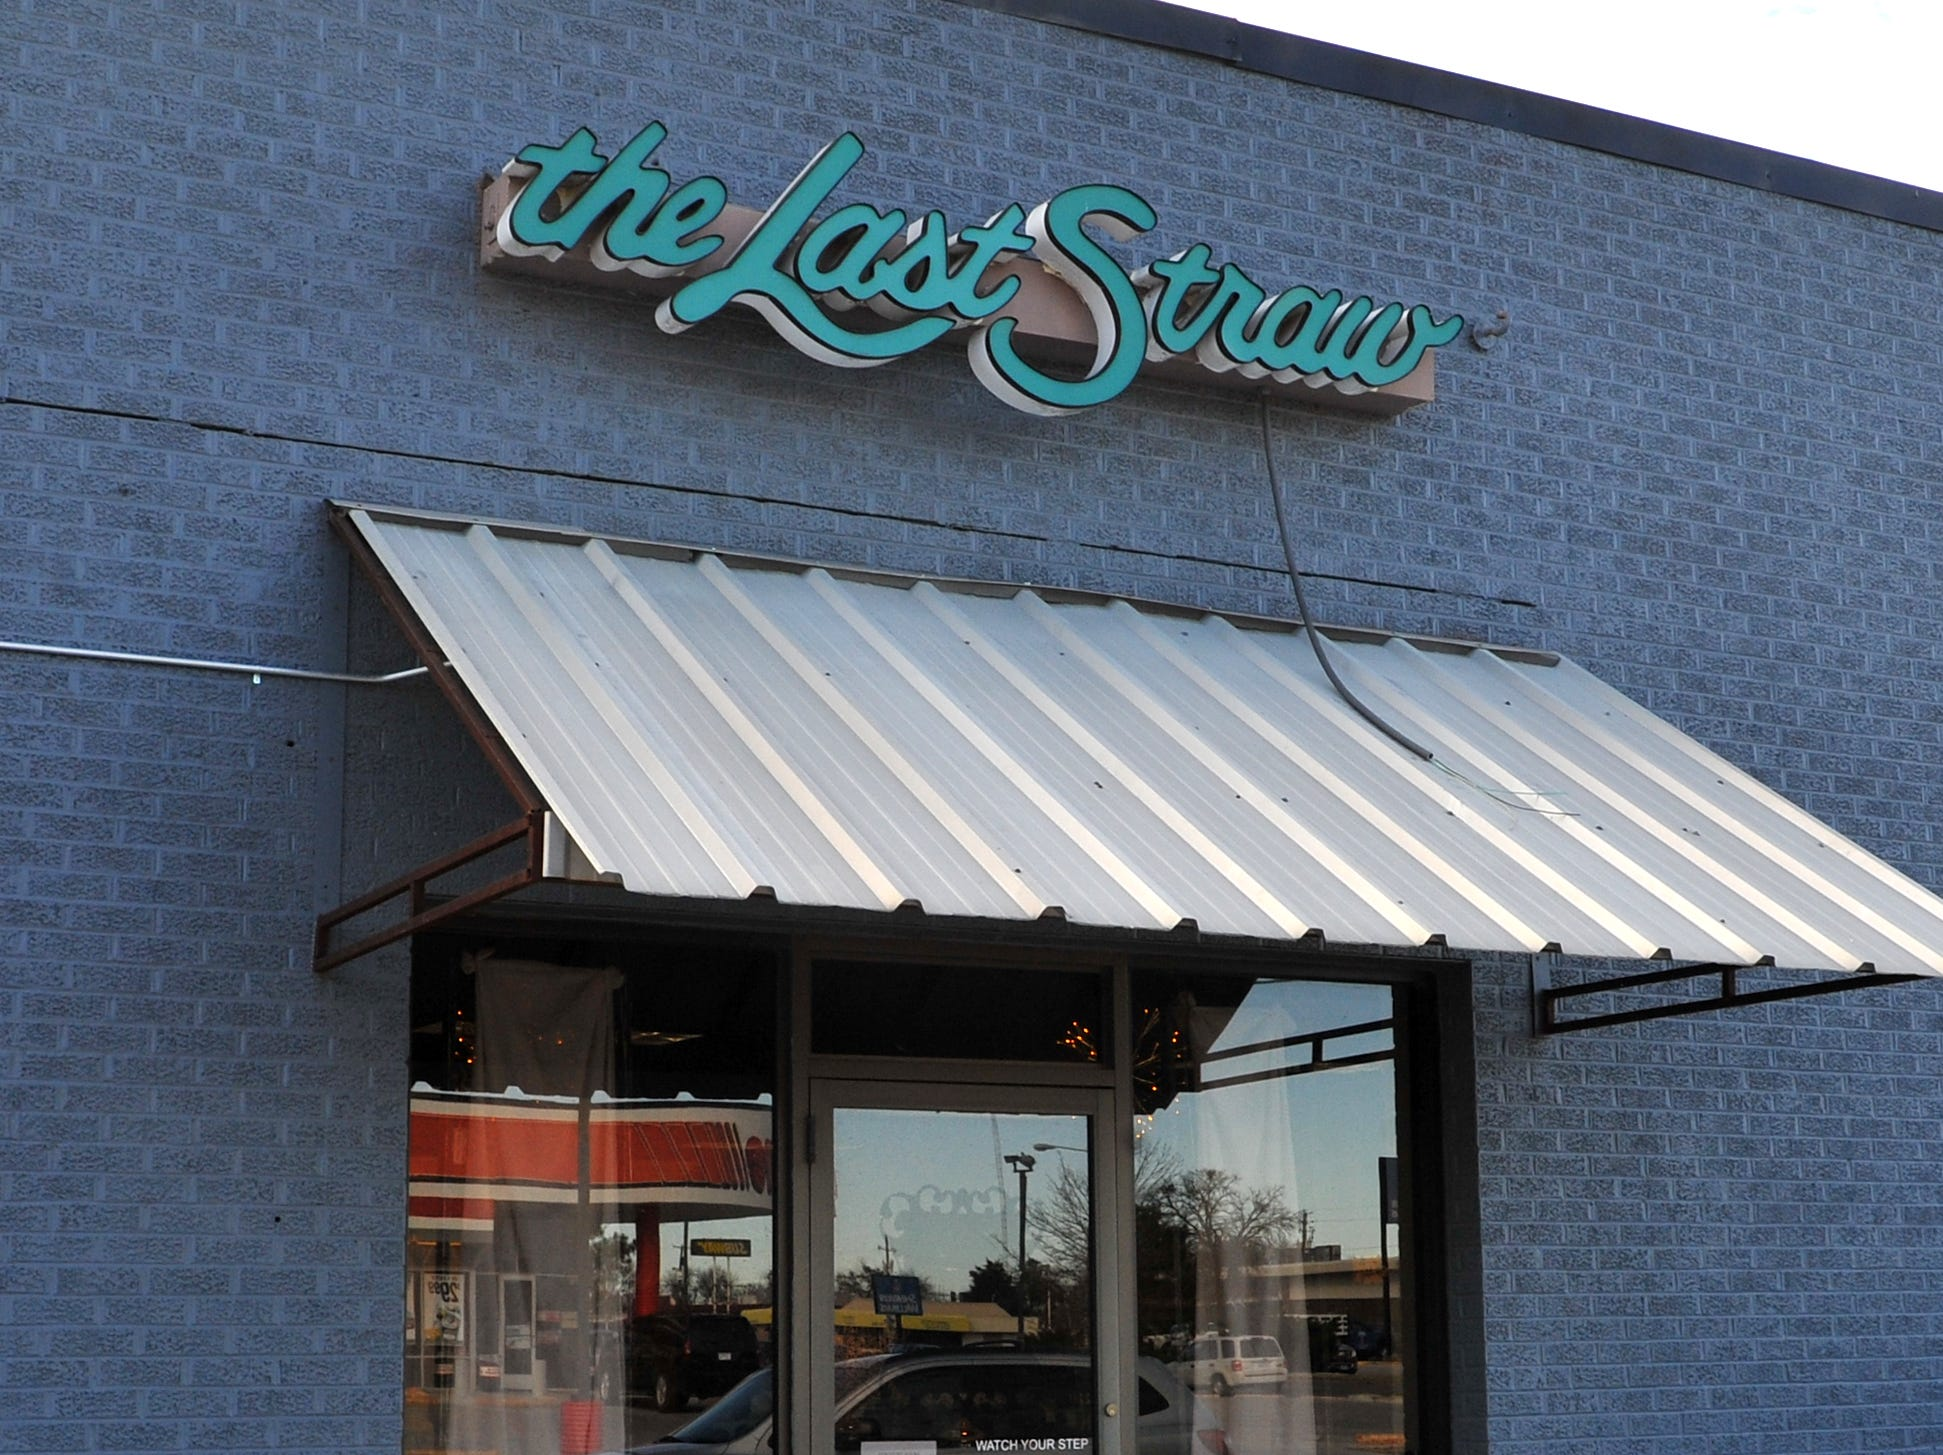 The Last Straw located on Kemp Boulevard will be closing their doors after 31 years of business in Wichita Falls.